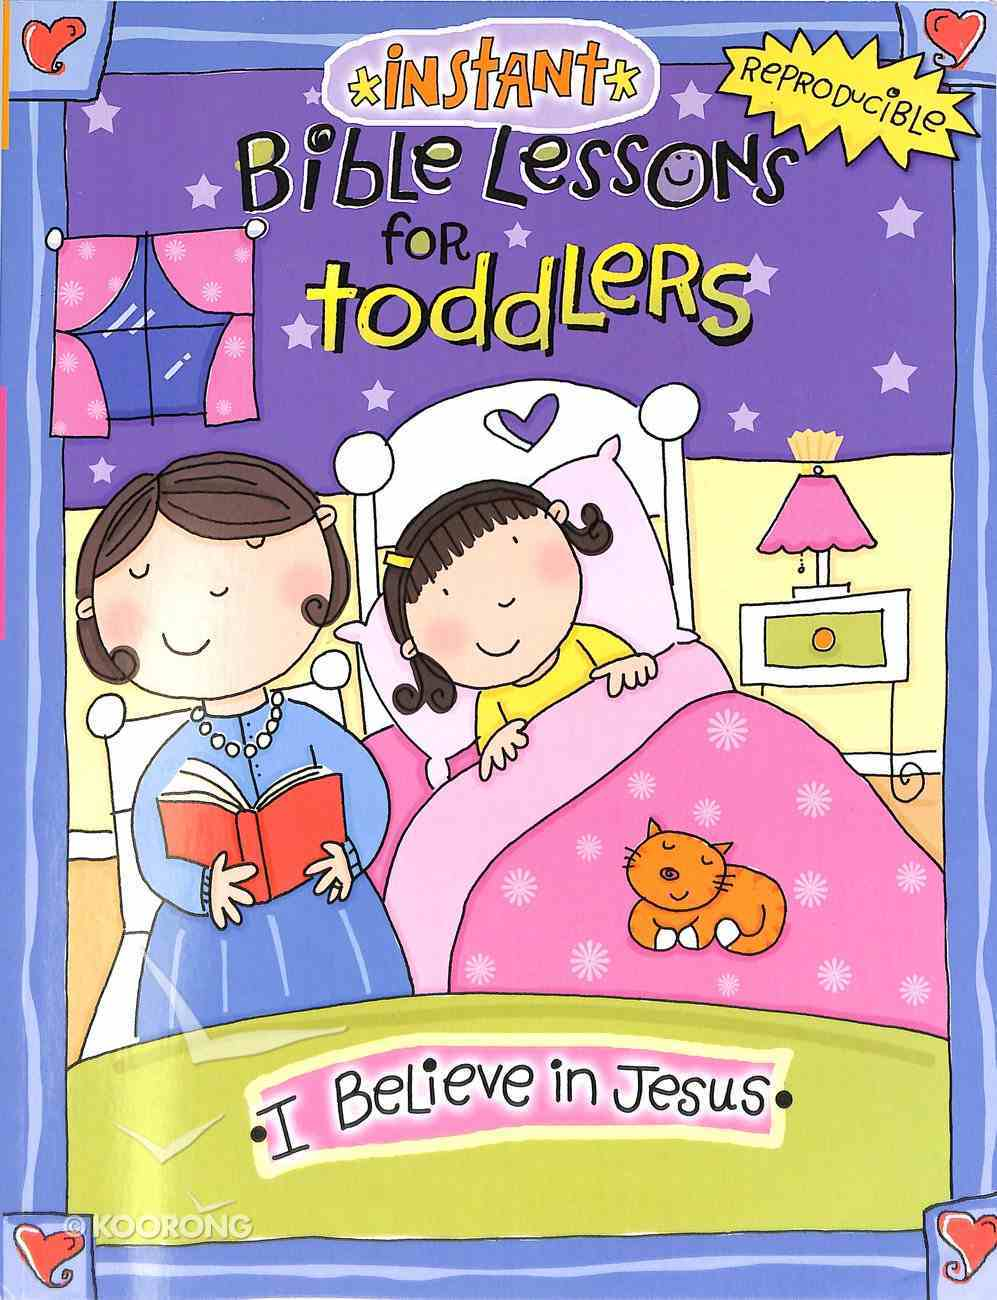 I Believe in Jesus (Reproducible, Ages 1-3) (Instant Bible Lessons Series) Paperback